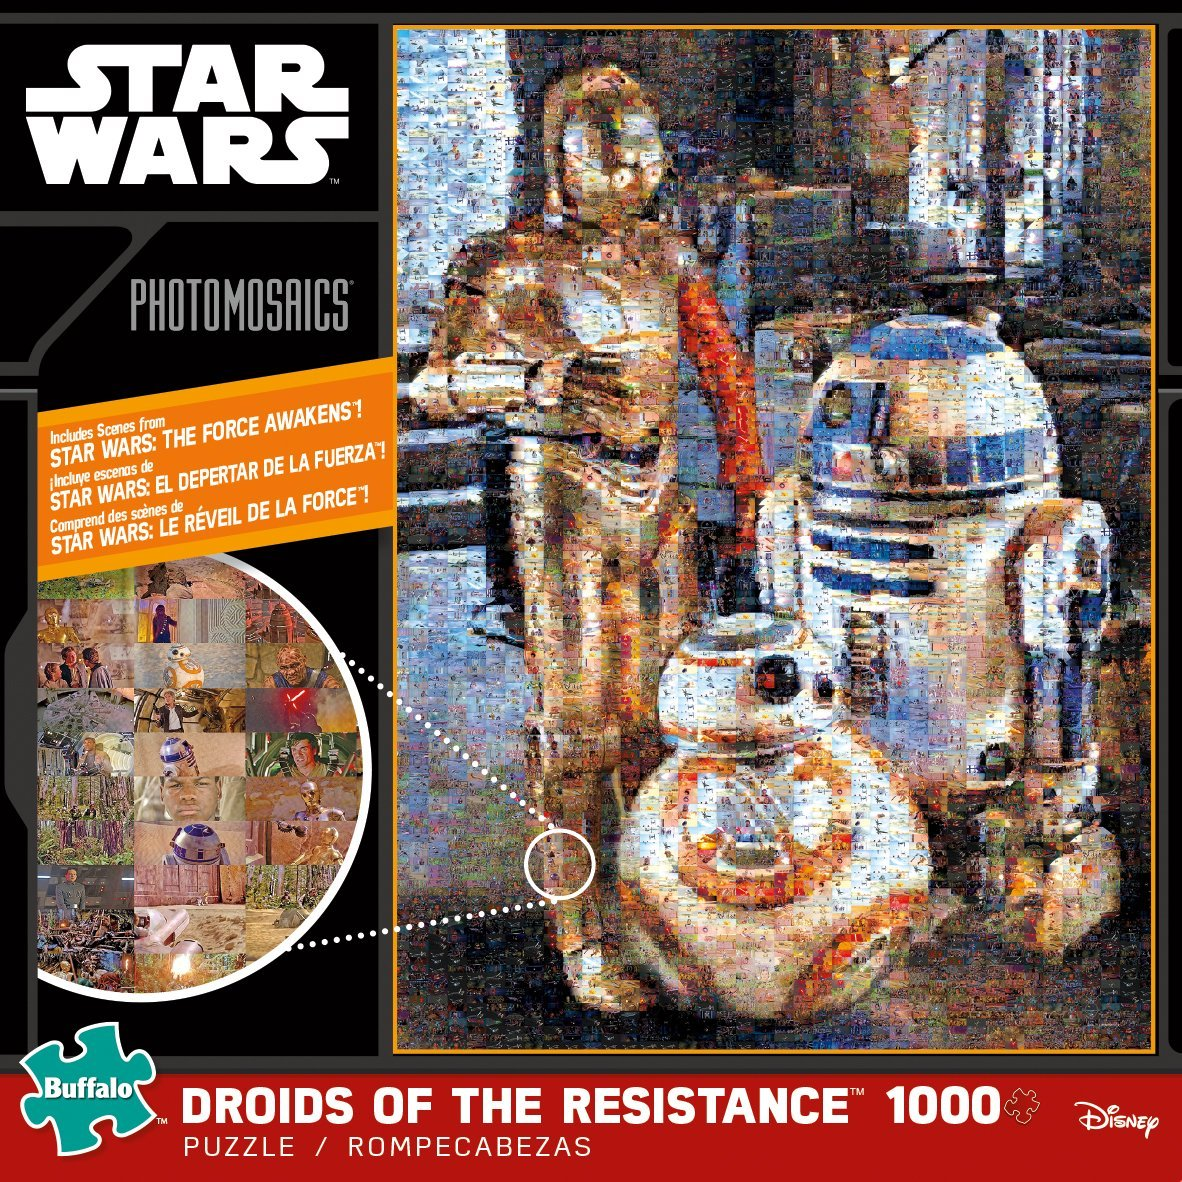 Star Wars Assortment: Droids Of The Resistance Photo Mosaic 1000